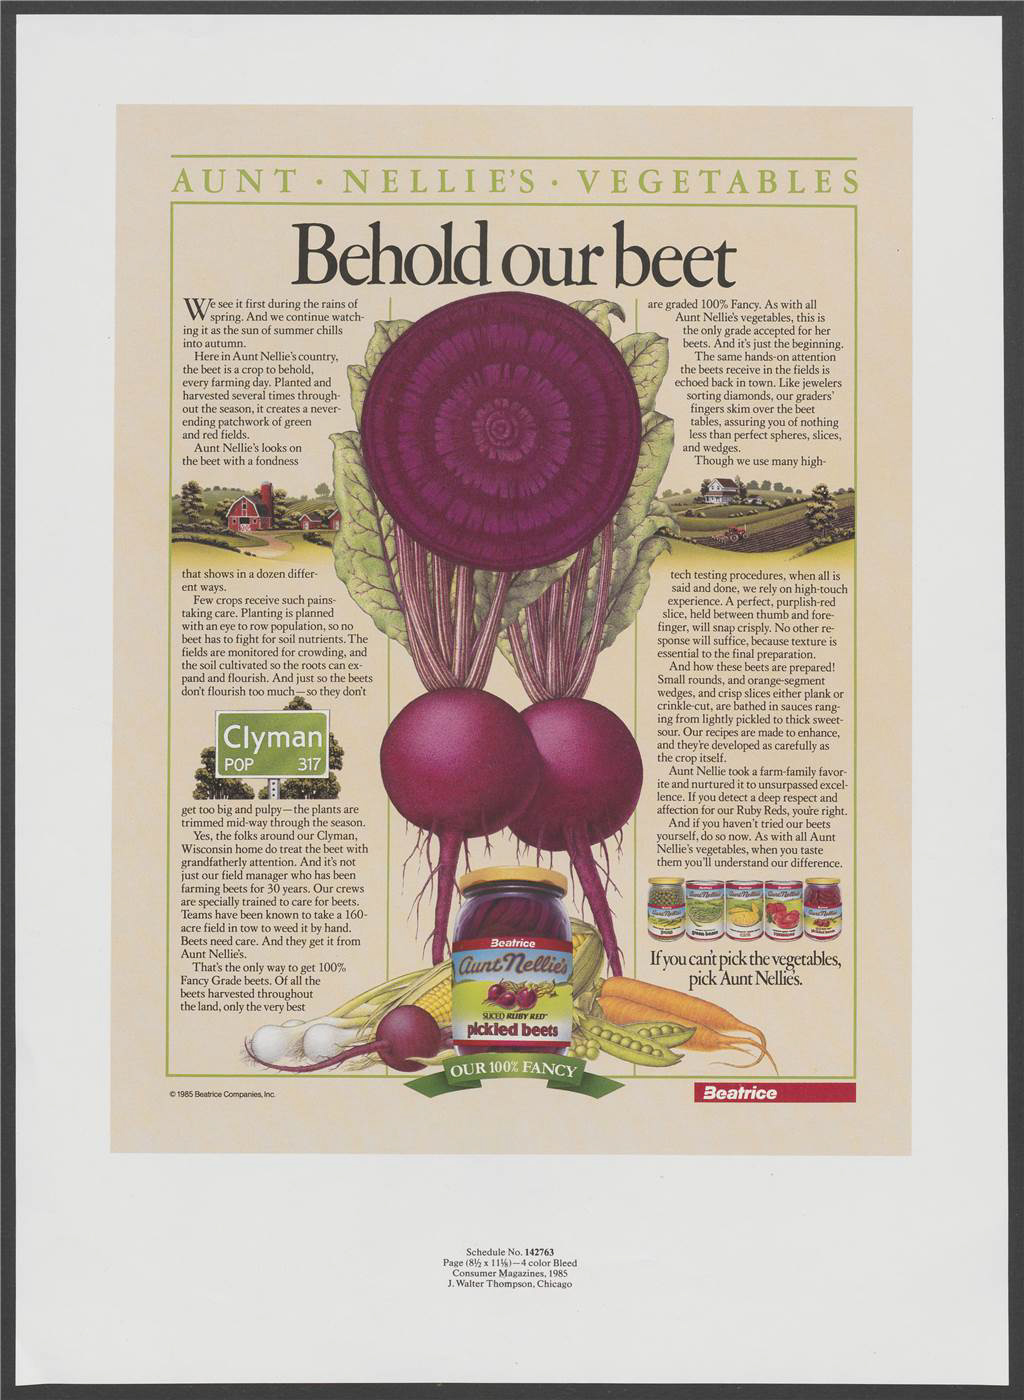 """Behold our beet"". Artwork showing cross-section of a beetroot with smaller images of jars and cans of vegetables. Text mentions the process of growing, farming, harvesting and selecting the vegetables. Discussion of quality assurance and an assurance of difference in taste."